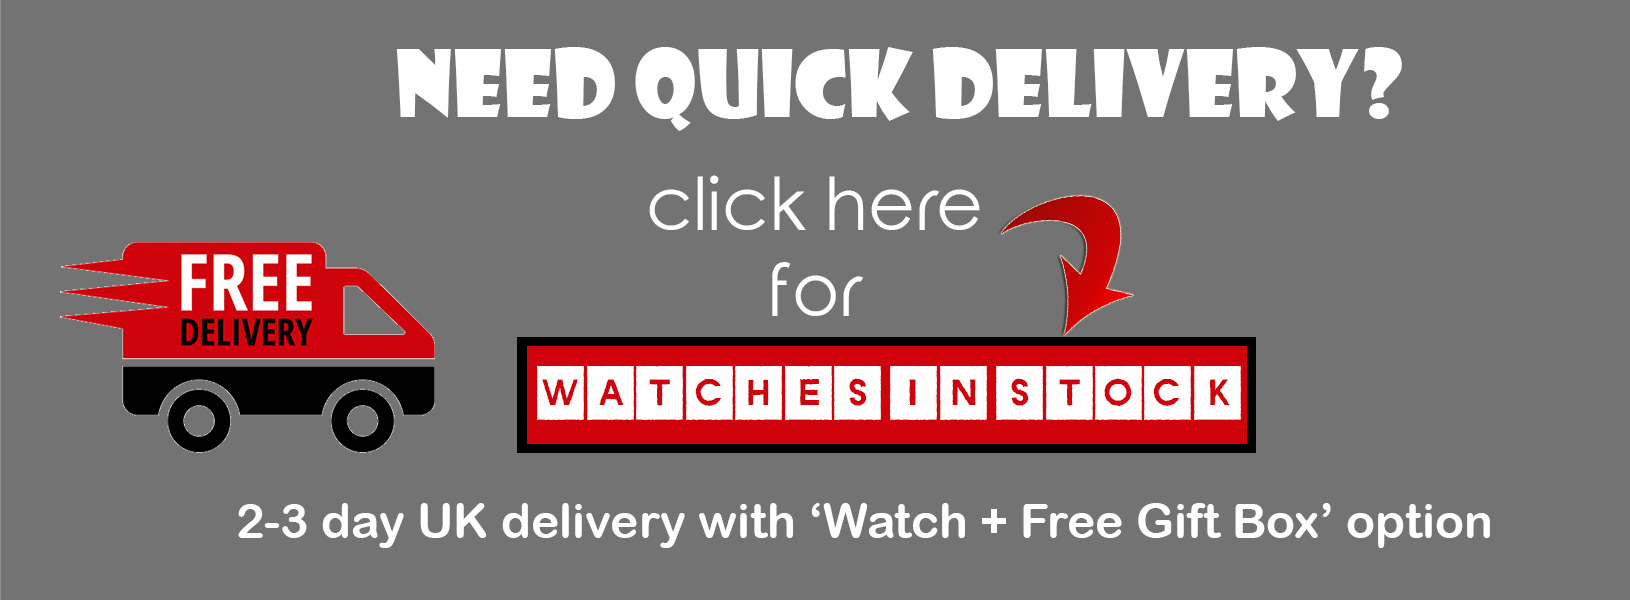 Wooden Watch Shop - Watches In Stock